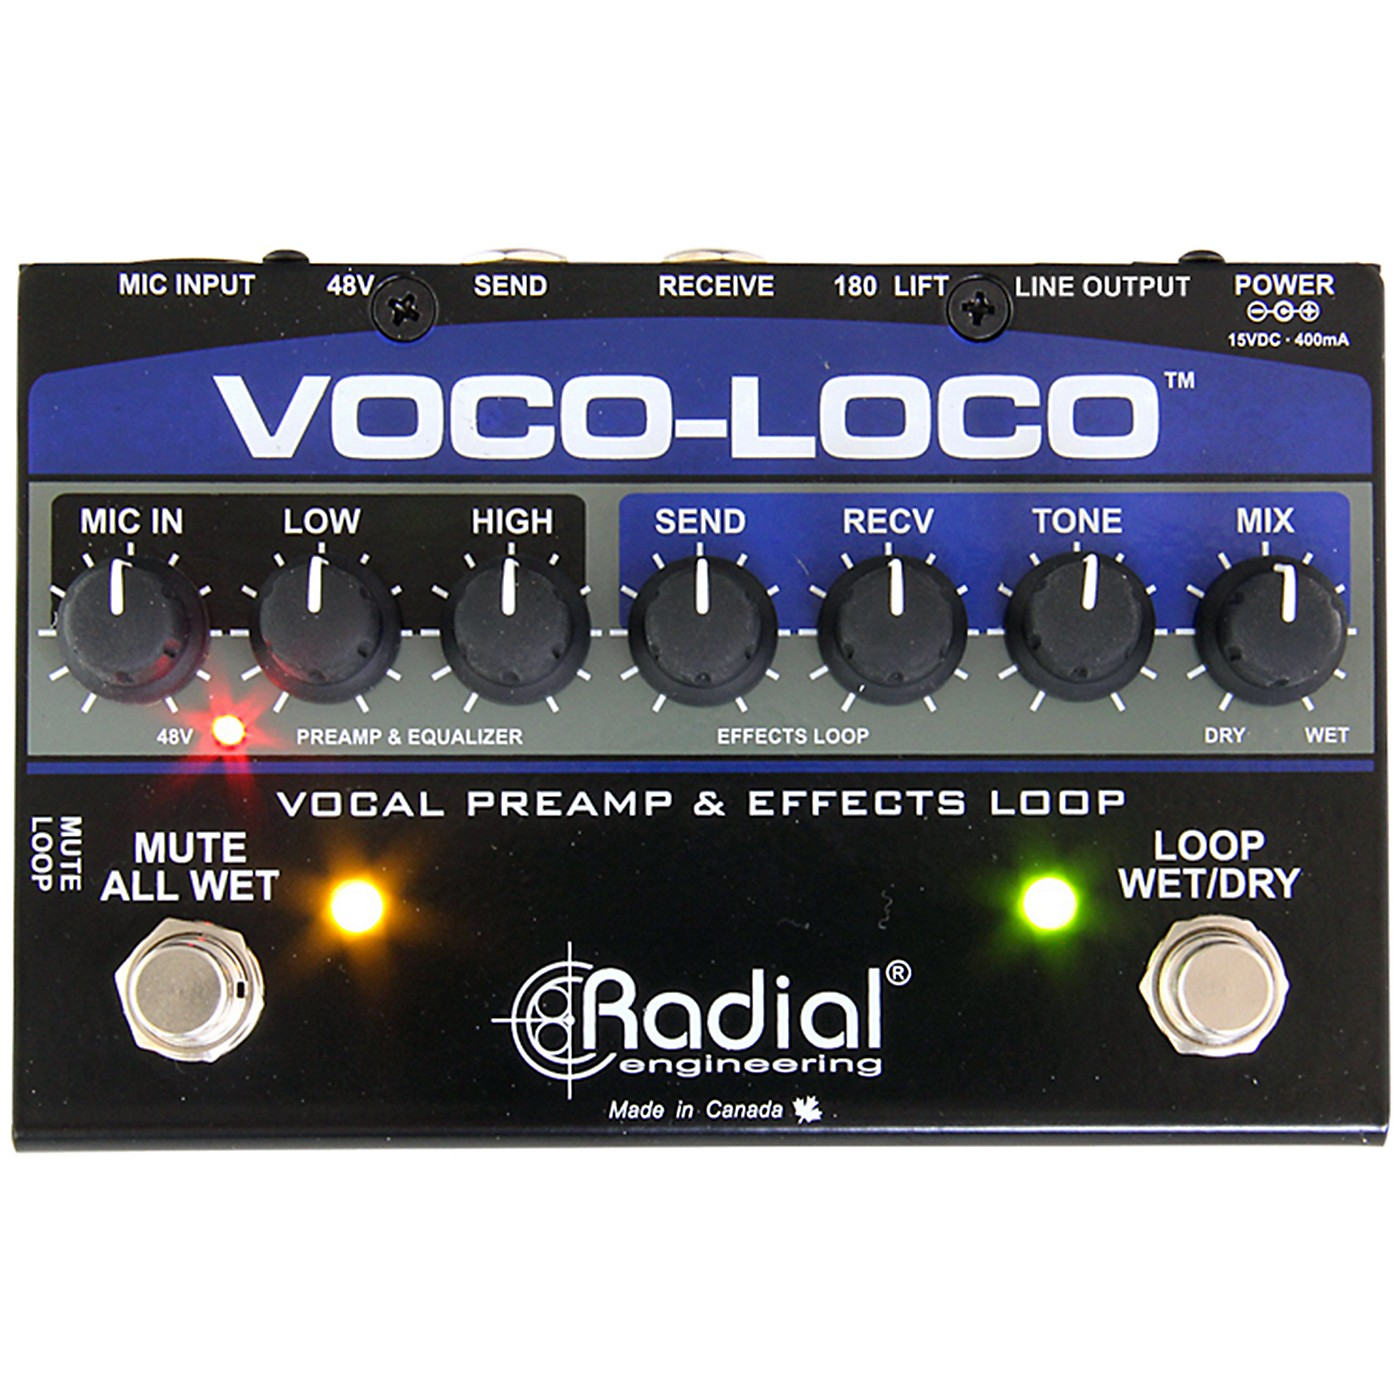 Radial Engineering Voco-Loco Vocal Preamp and Effect Switcher thumbnail